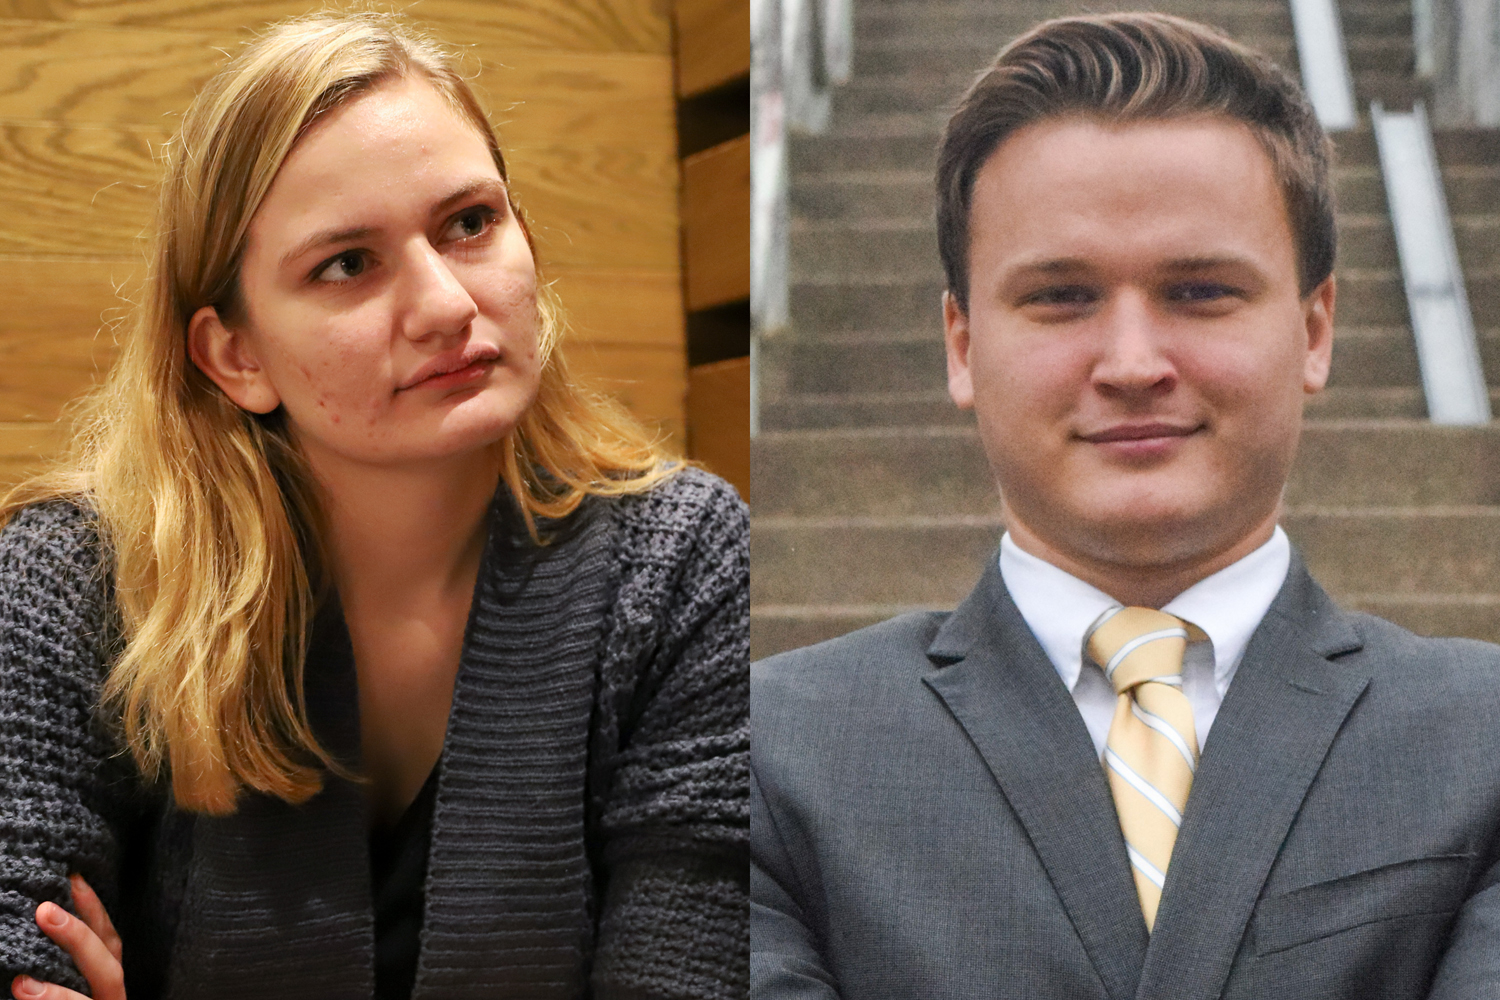 Pitt undergraduates Ashley Priore (left) and Chris Kumanchik (right) are both currently facing difficulties with their respective political campaigns.